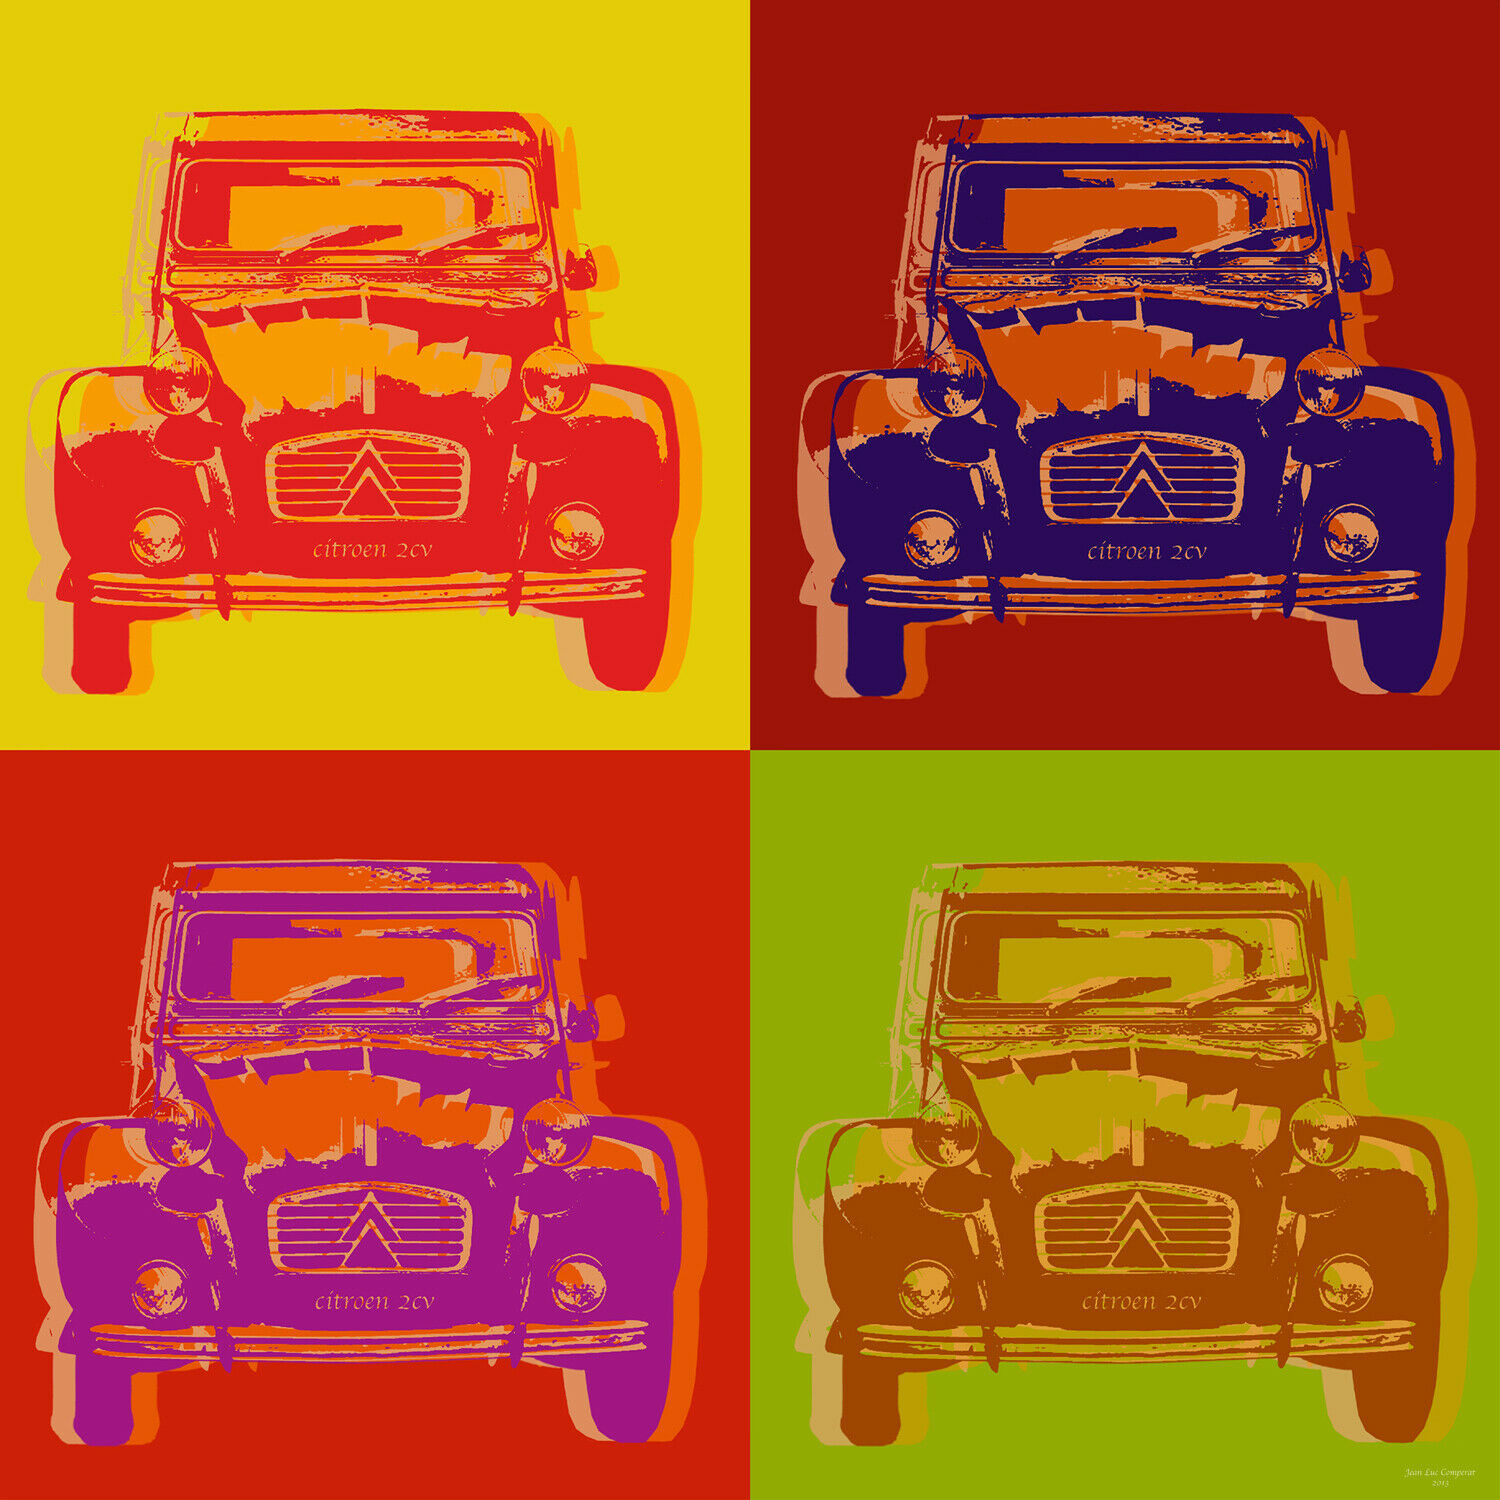 "Citroen 2CV Pop Art Warhol style poster print - 17 1/2"" x 17 1/2"" - on canvas"